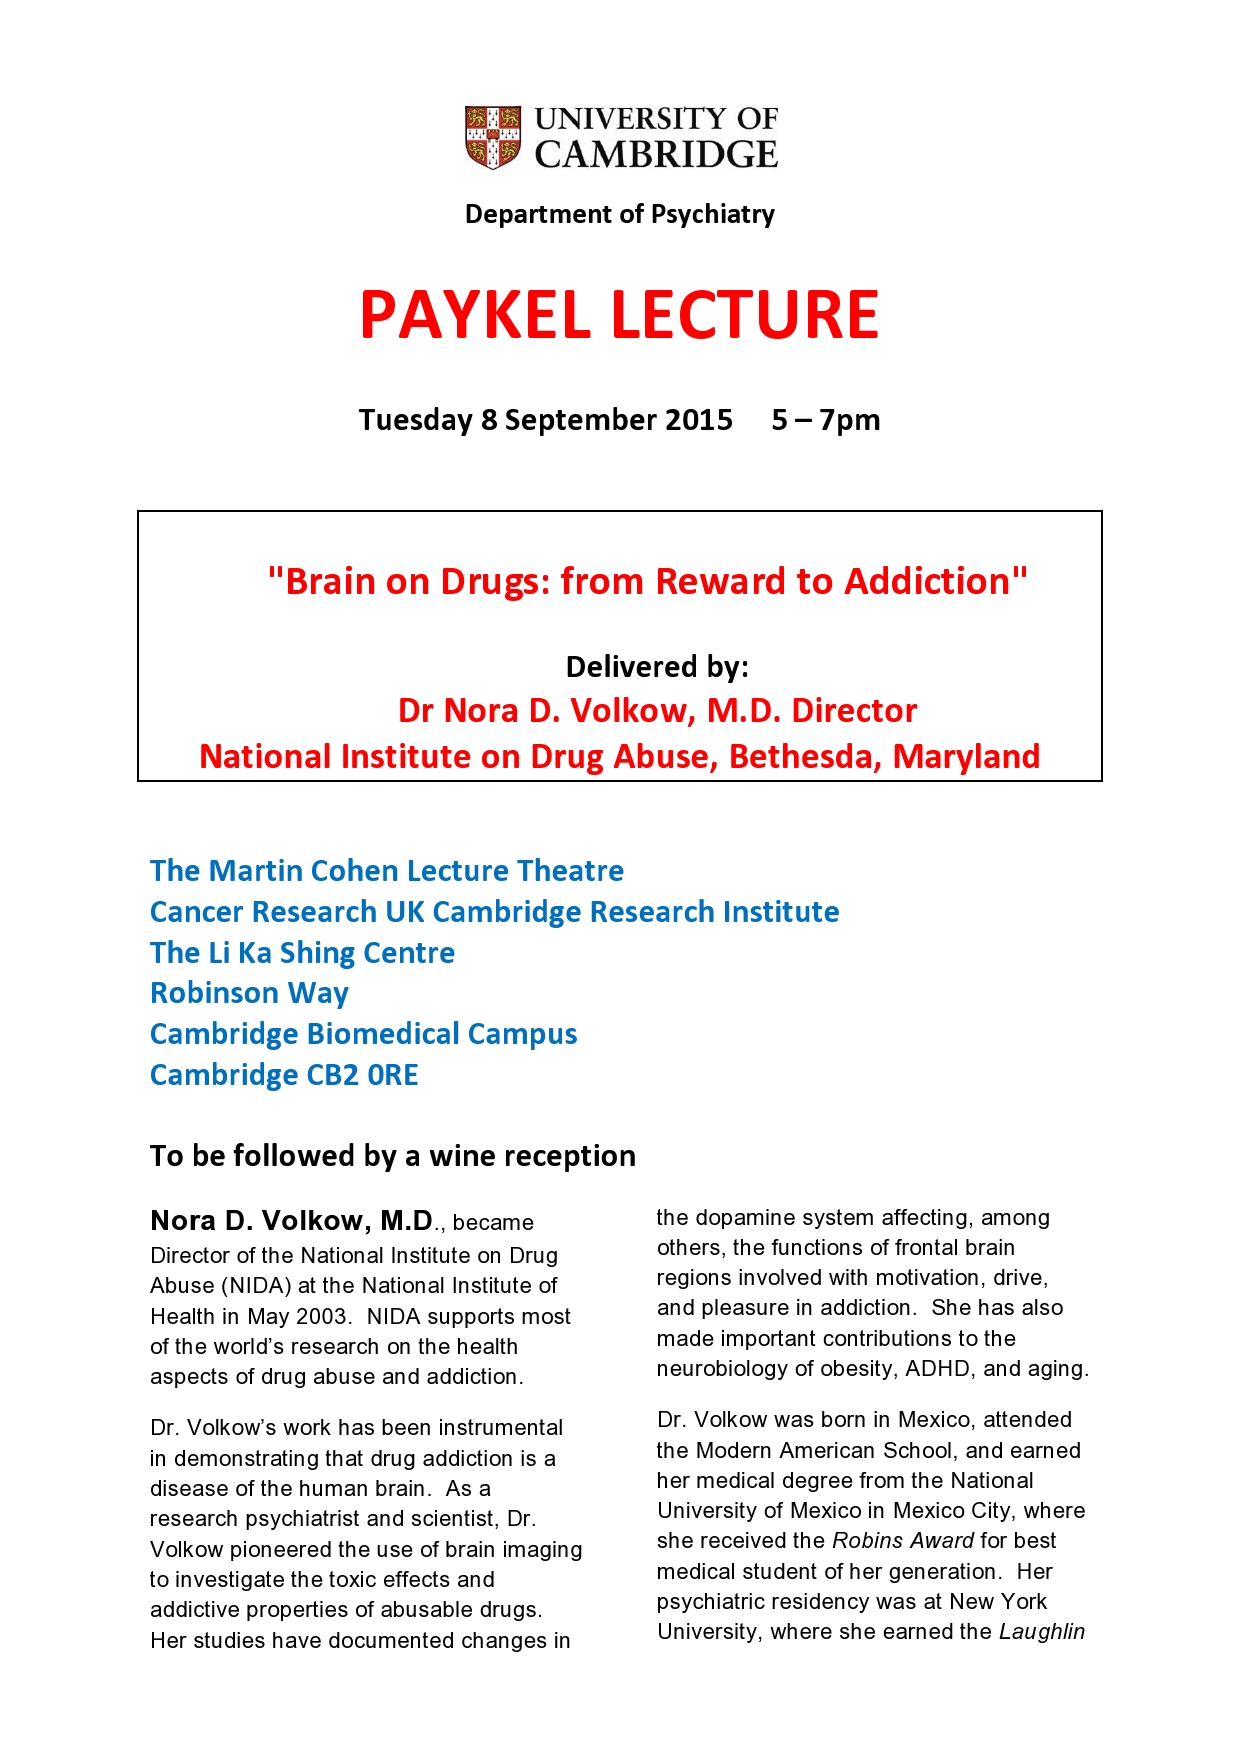 Paykel Lecture 2015 p1 - Department of Psychiatry